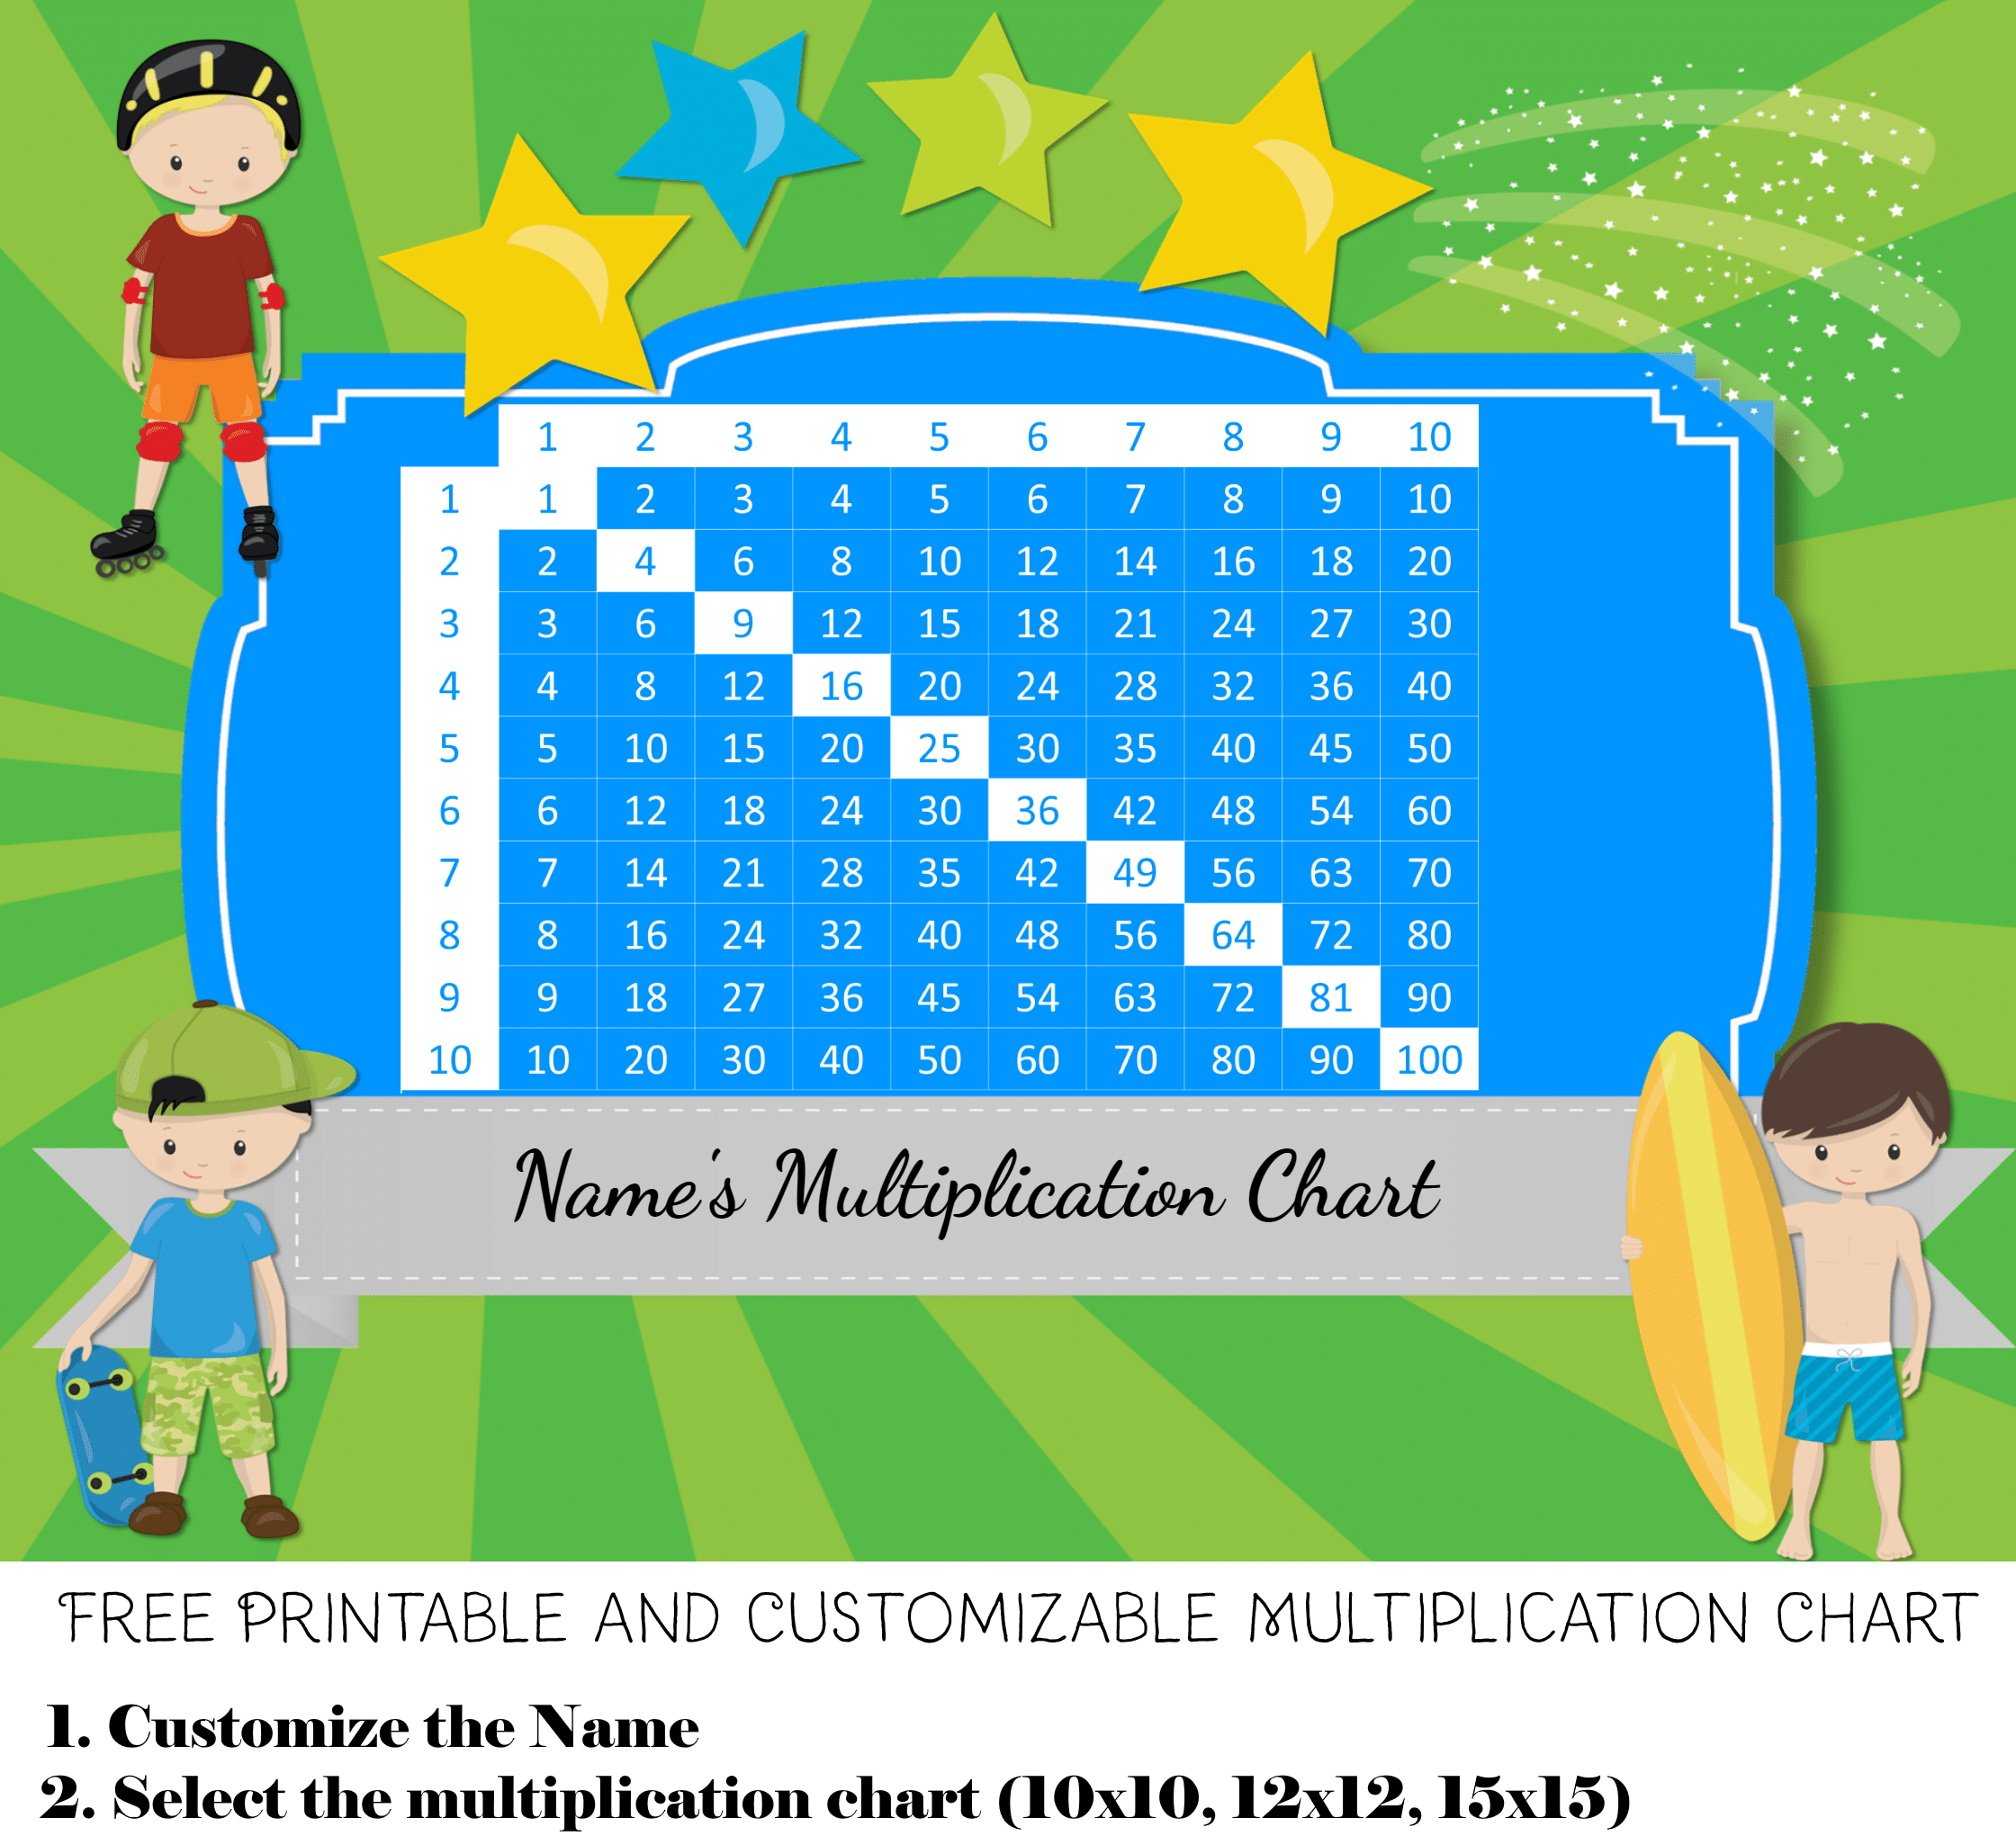 Free custom multiplication chart printable surfer skater and another boy nvjuhfo Images